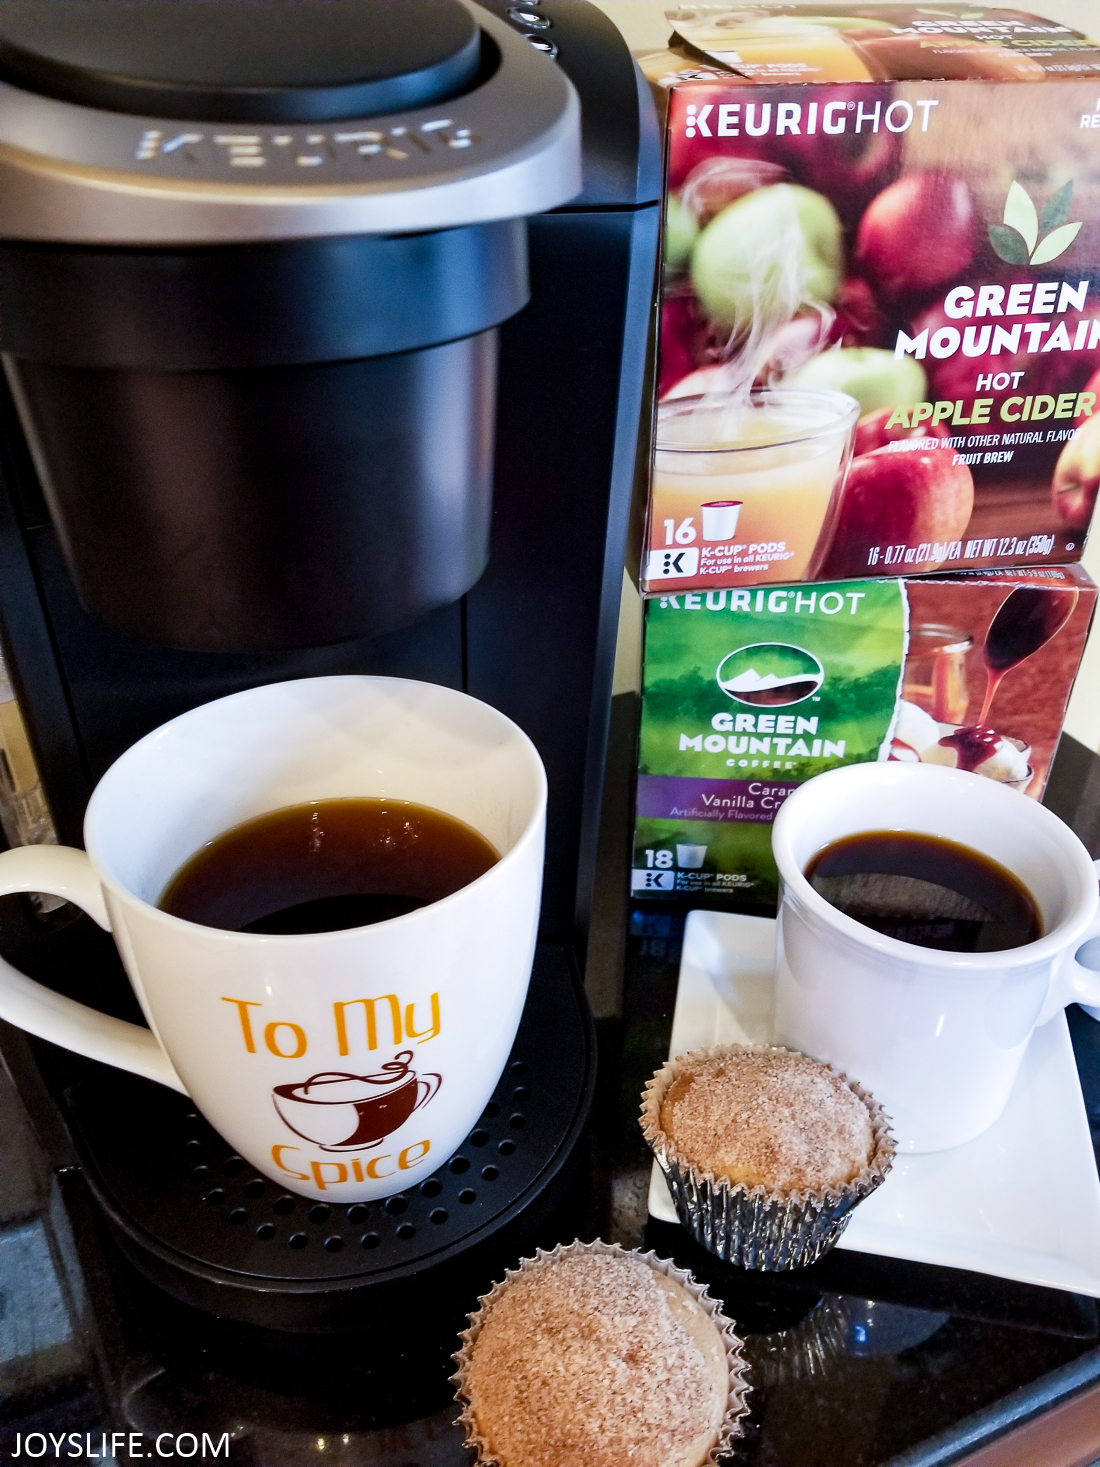 keurig kcup boxes muffins and coffee